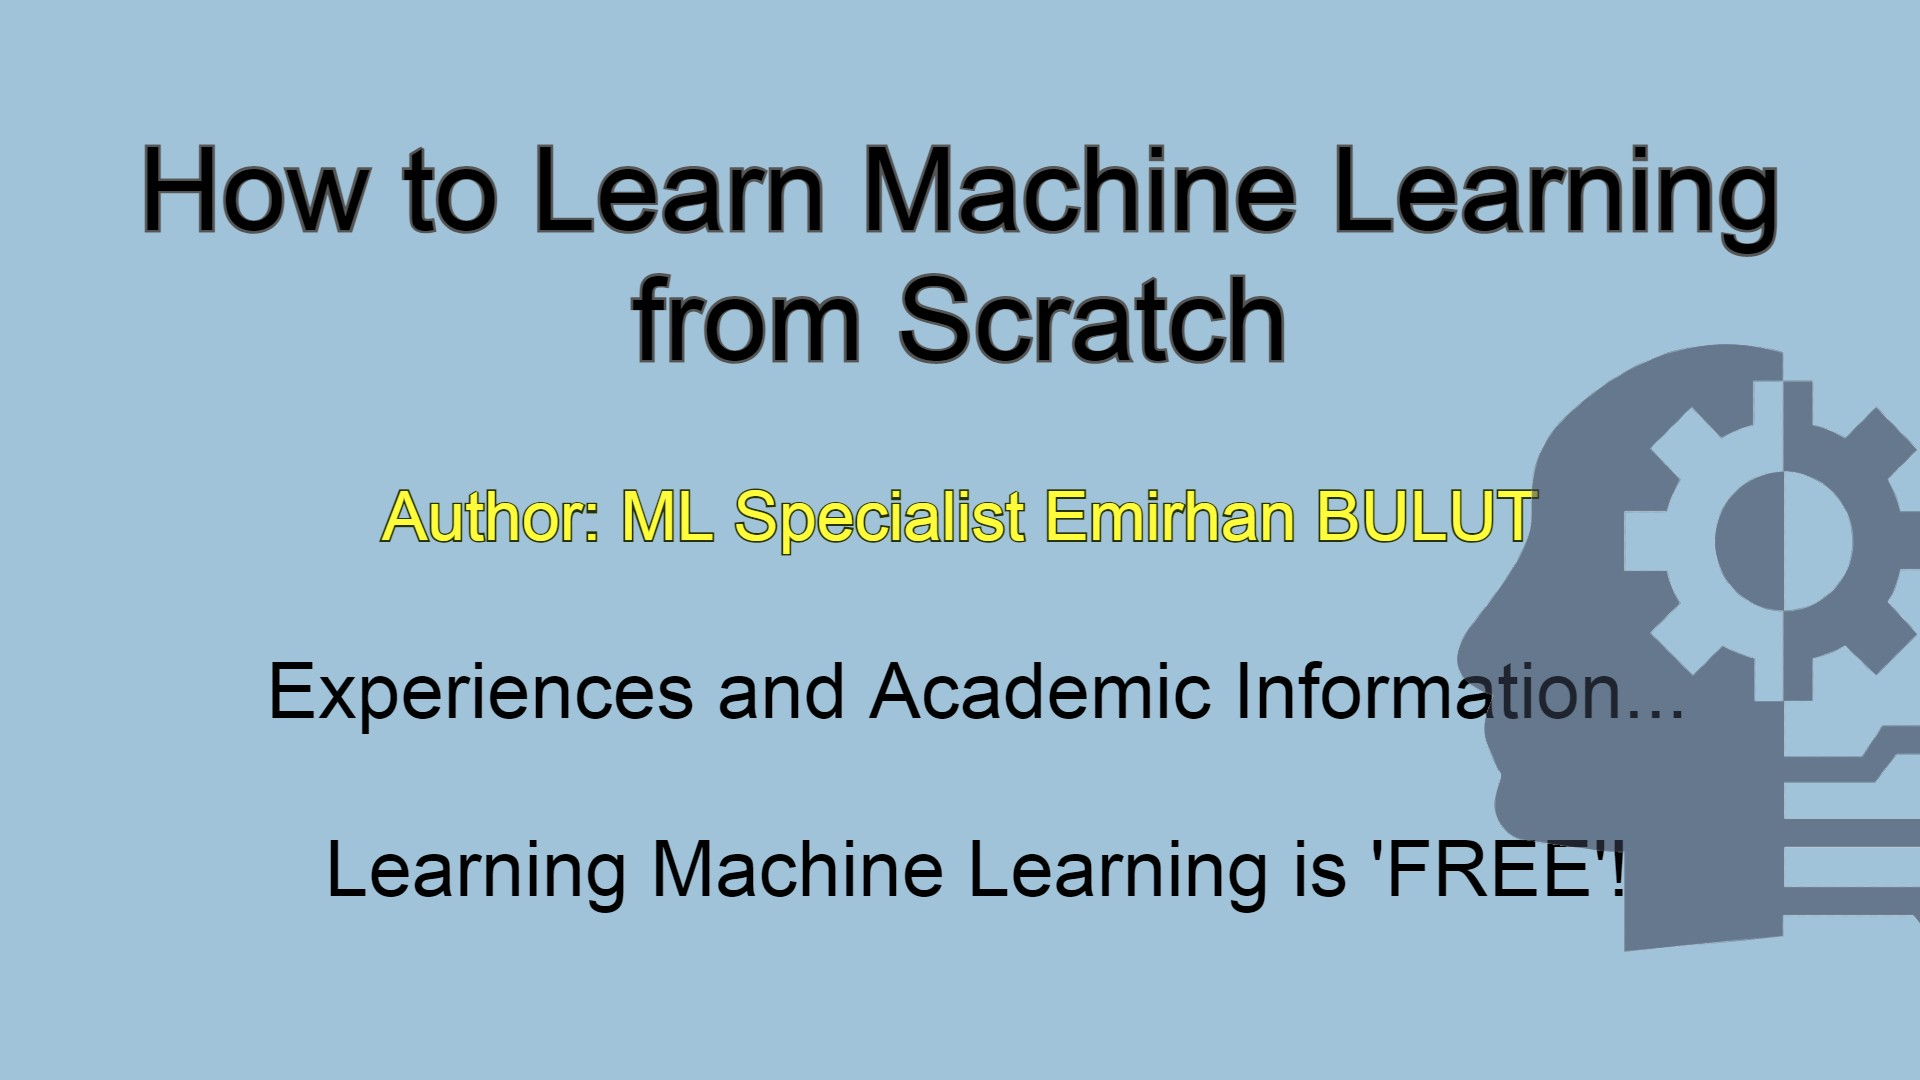 How to Learn Machine Learning from Scratch